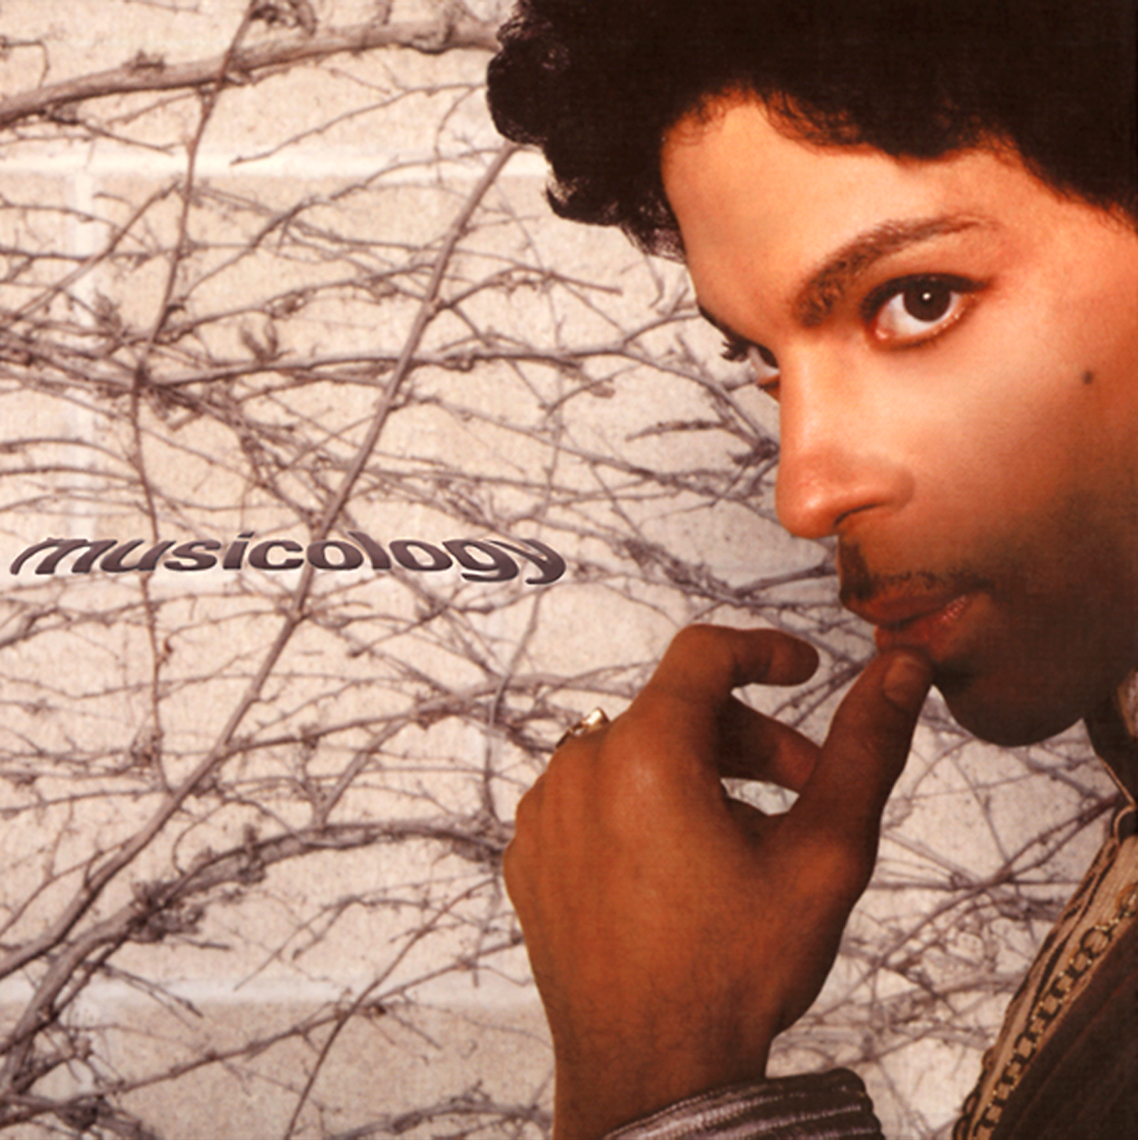 Prince Musicology Cover Musician